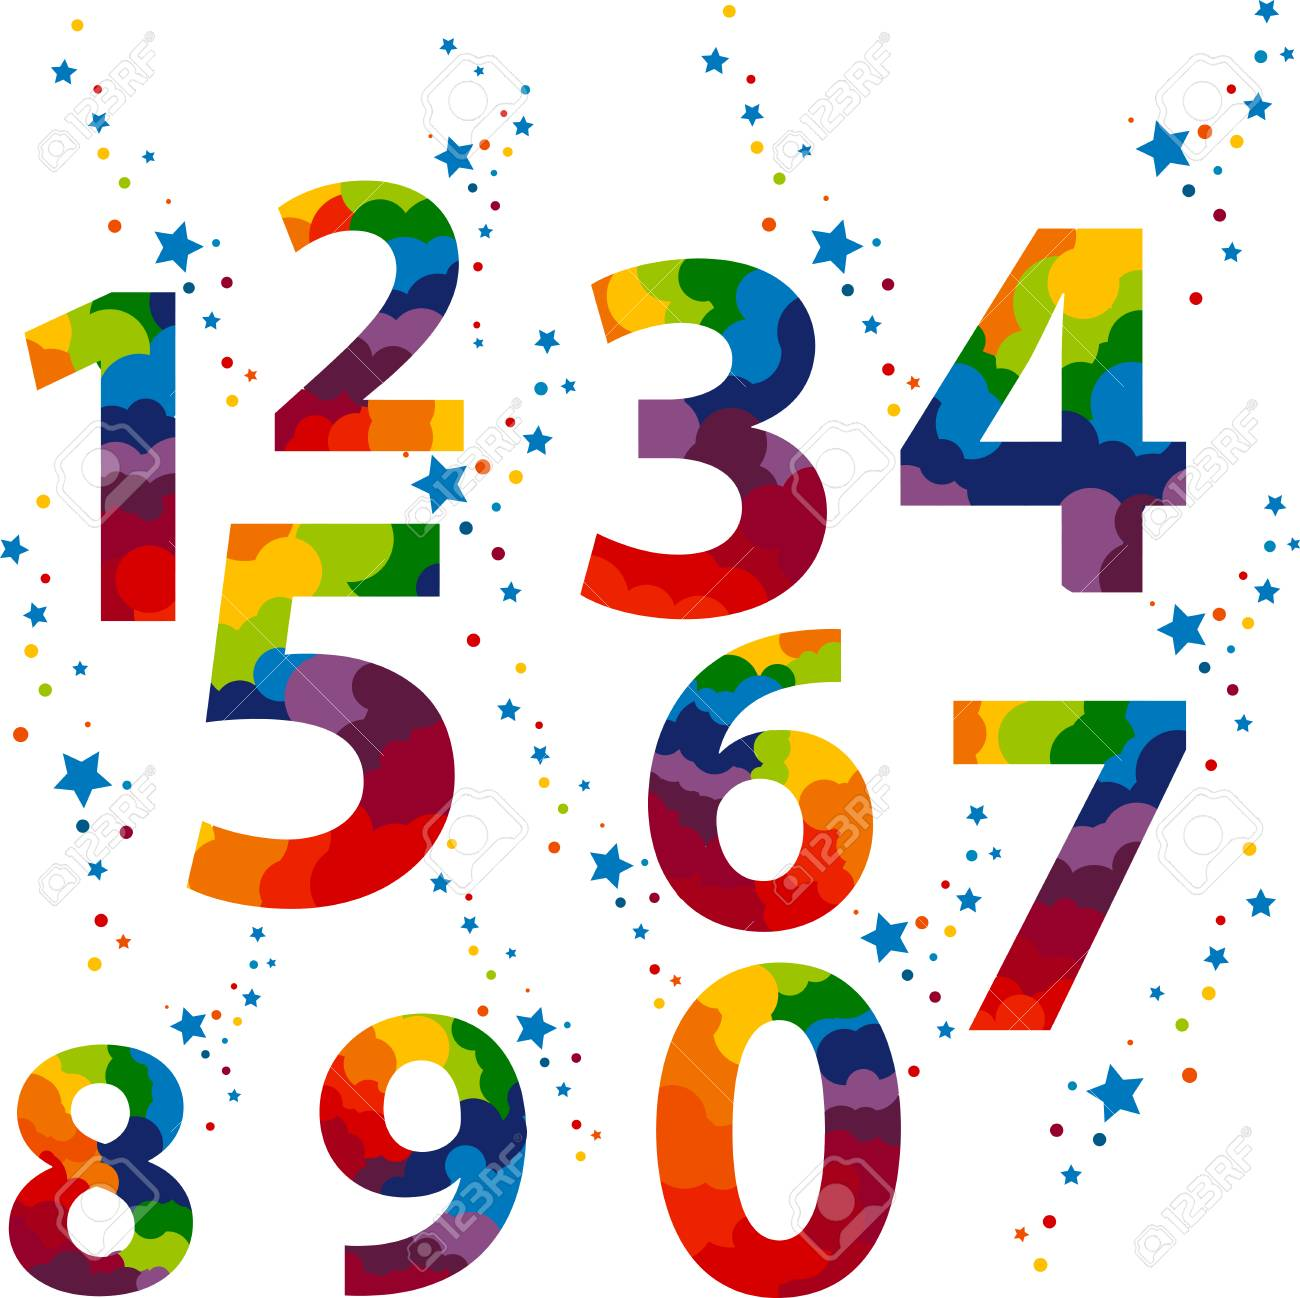 Numbers set colored idea numerals typography design element numbers set colored idea numerals typography design element for wedding invitation mathematics logo symbols biocorpaavc Image collections